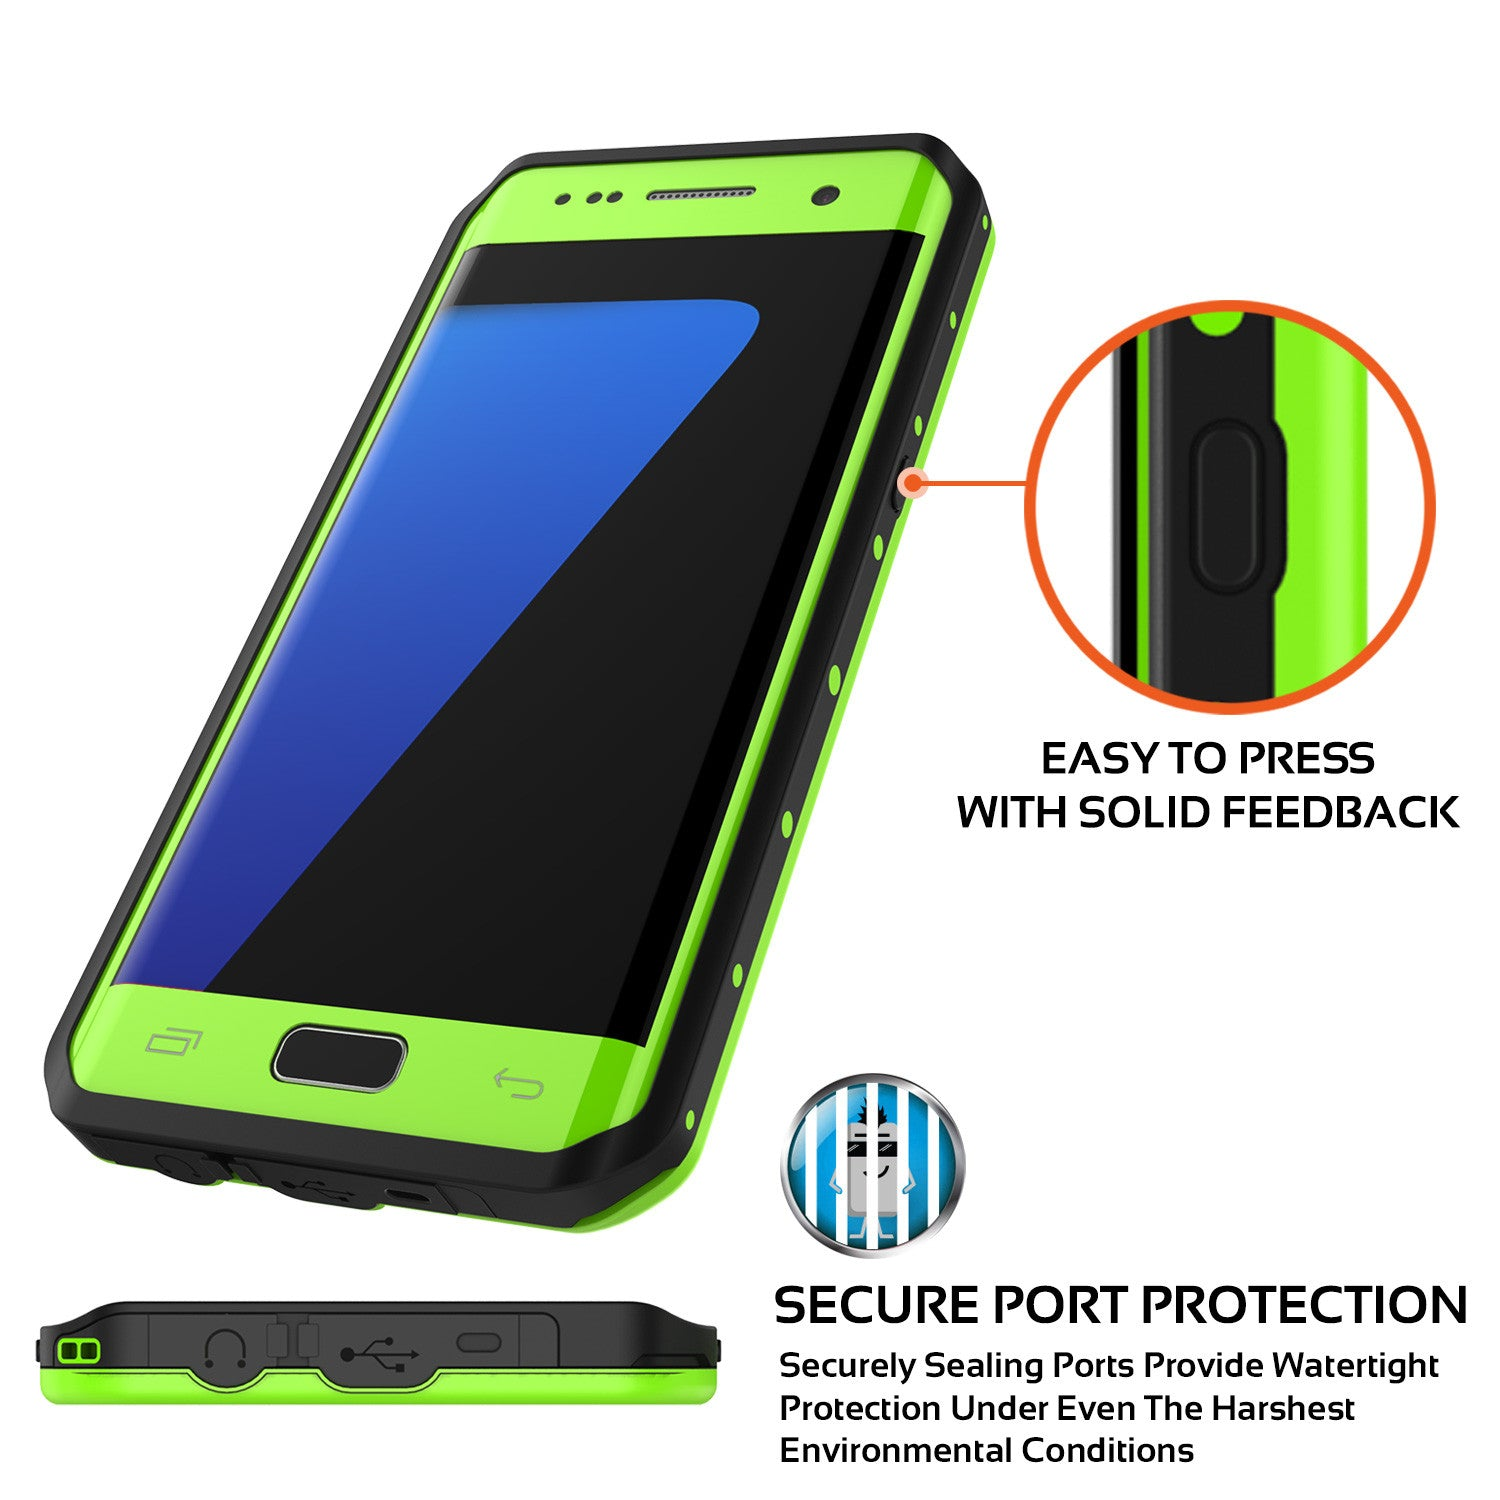 Galaxy S7 EDGE Waterproof Case PunkCase StudStar Light Green Thin 6.6ft Underwater IP68 ShockProof